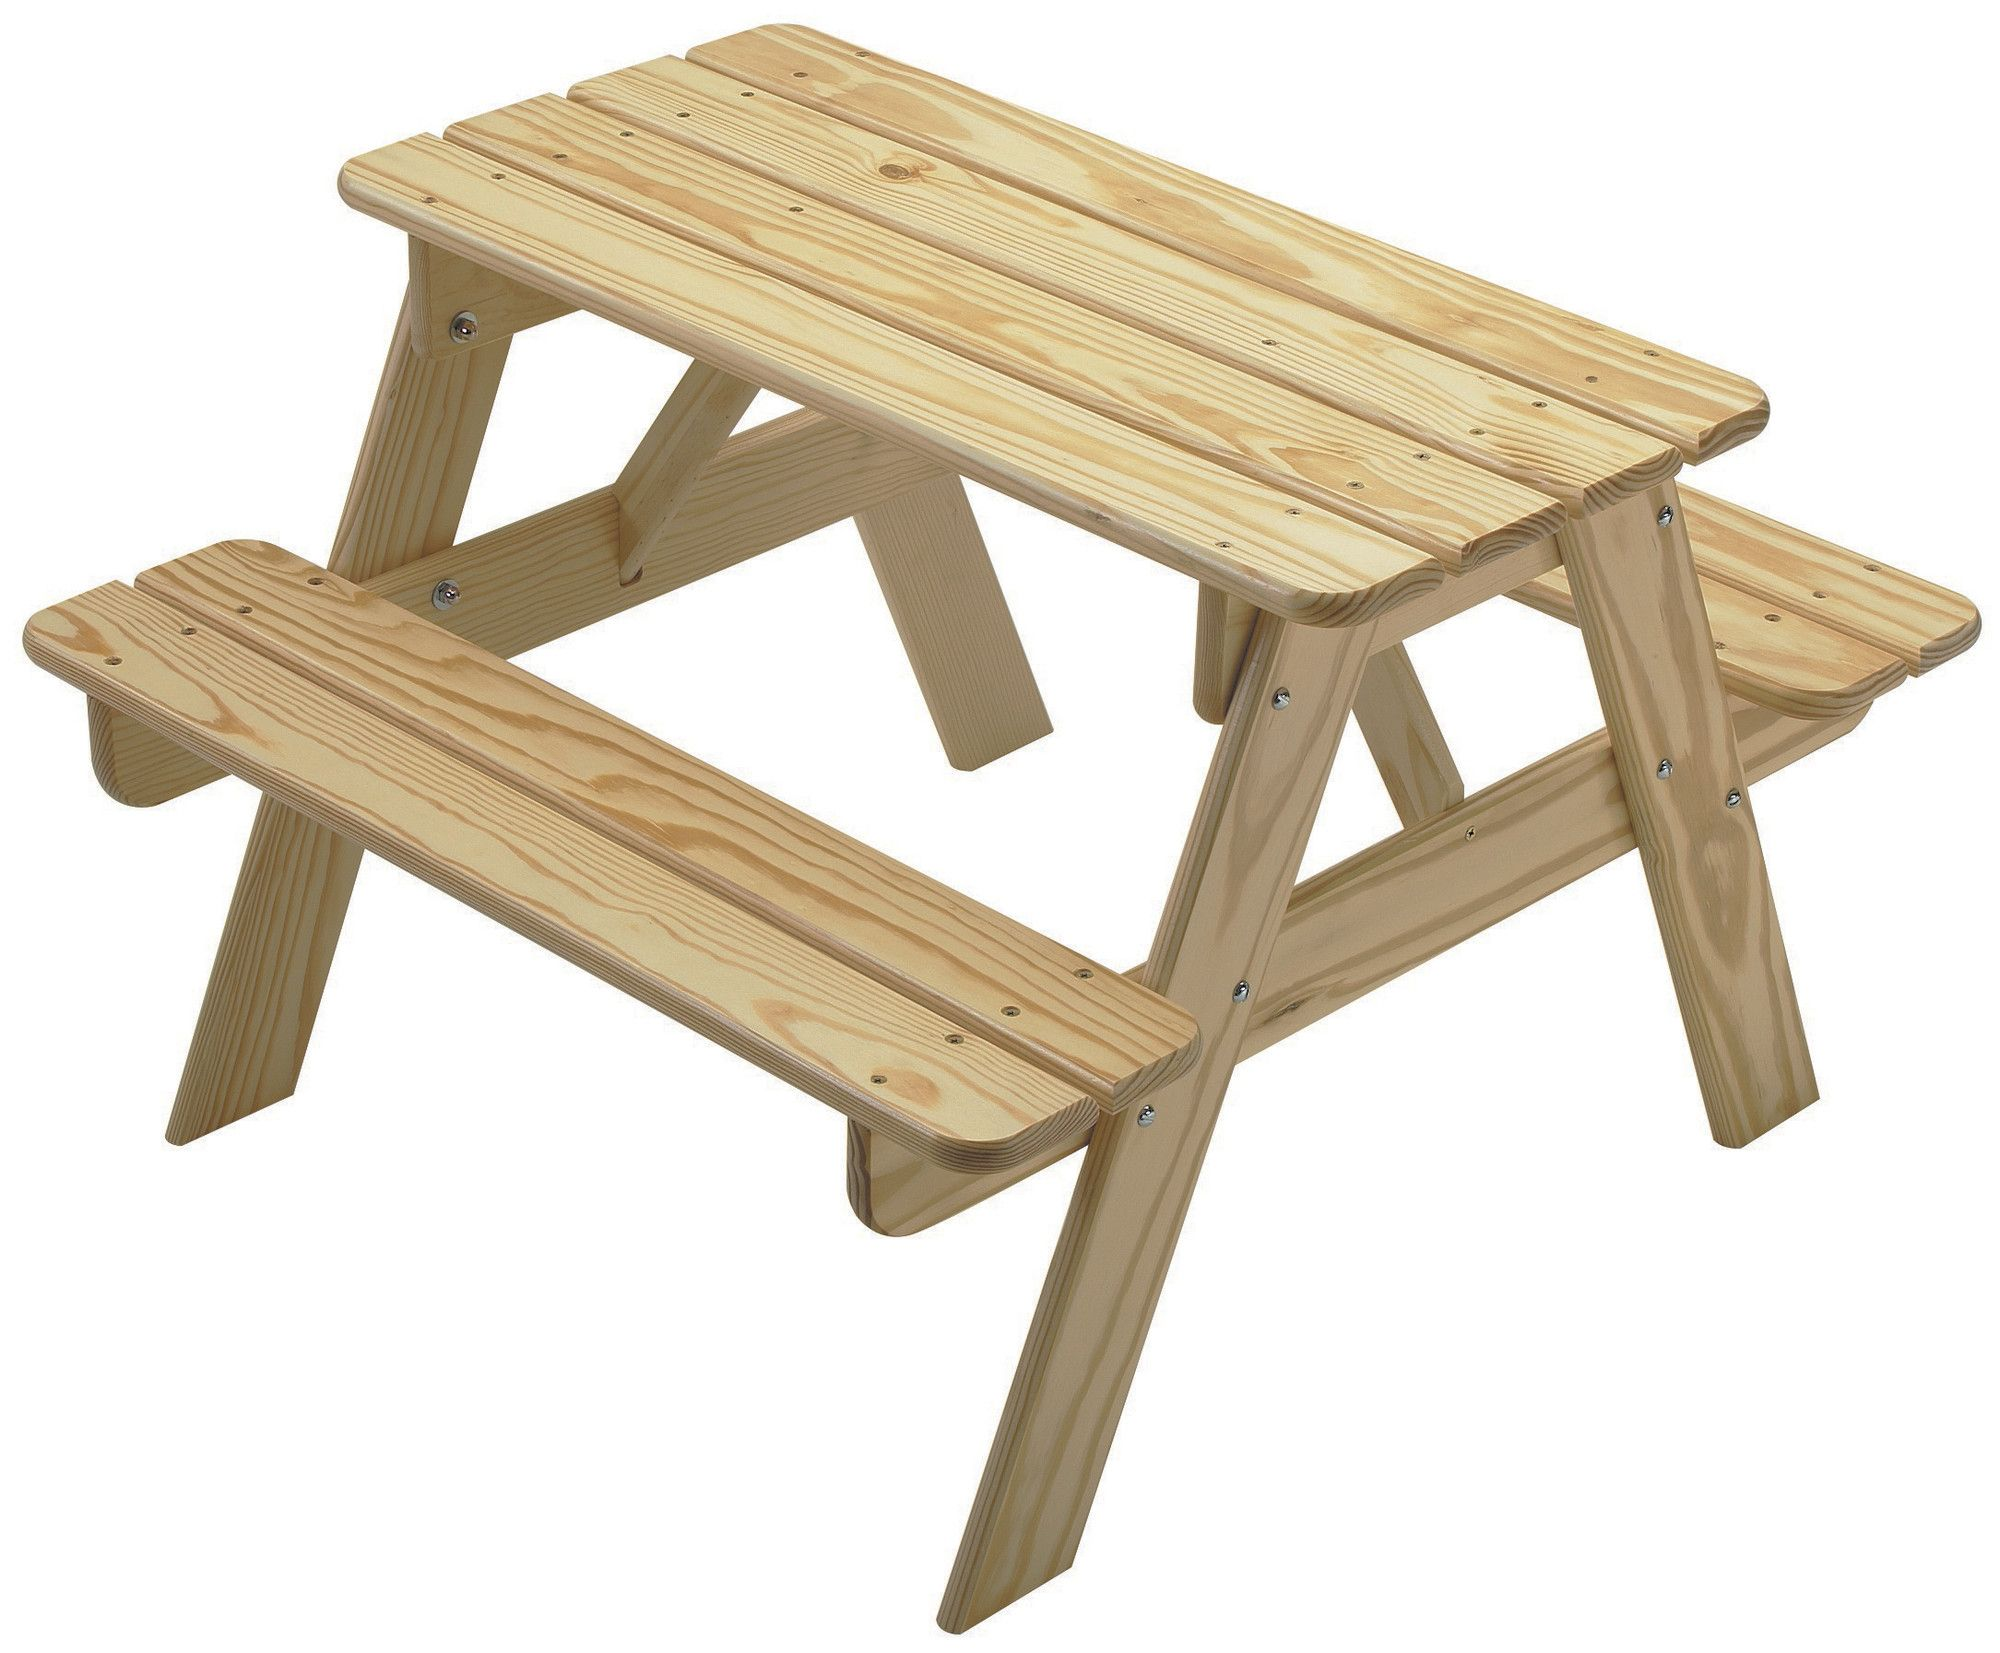 Kids Picnic Table Height Top To Bottom 22 Inches Width Side 33 Depth Front Back 30 Overall Product